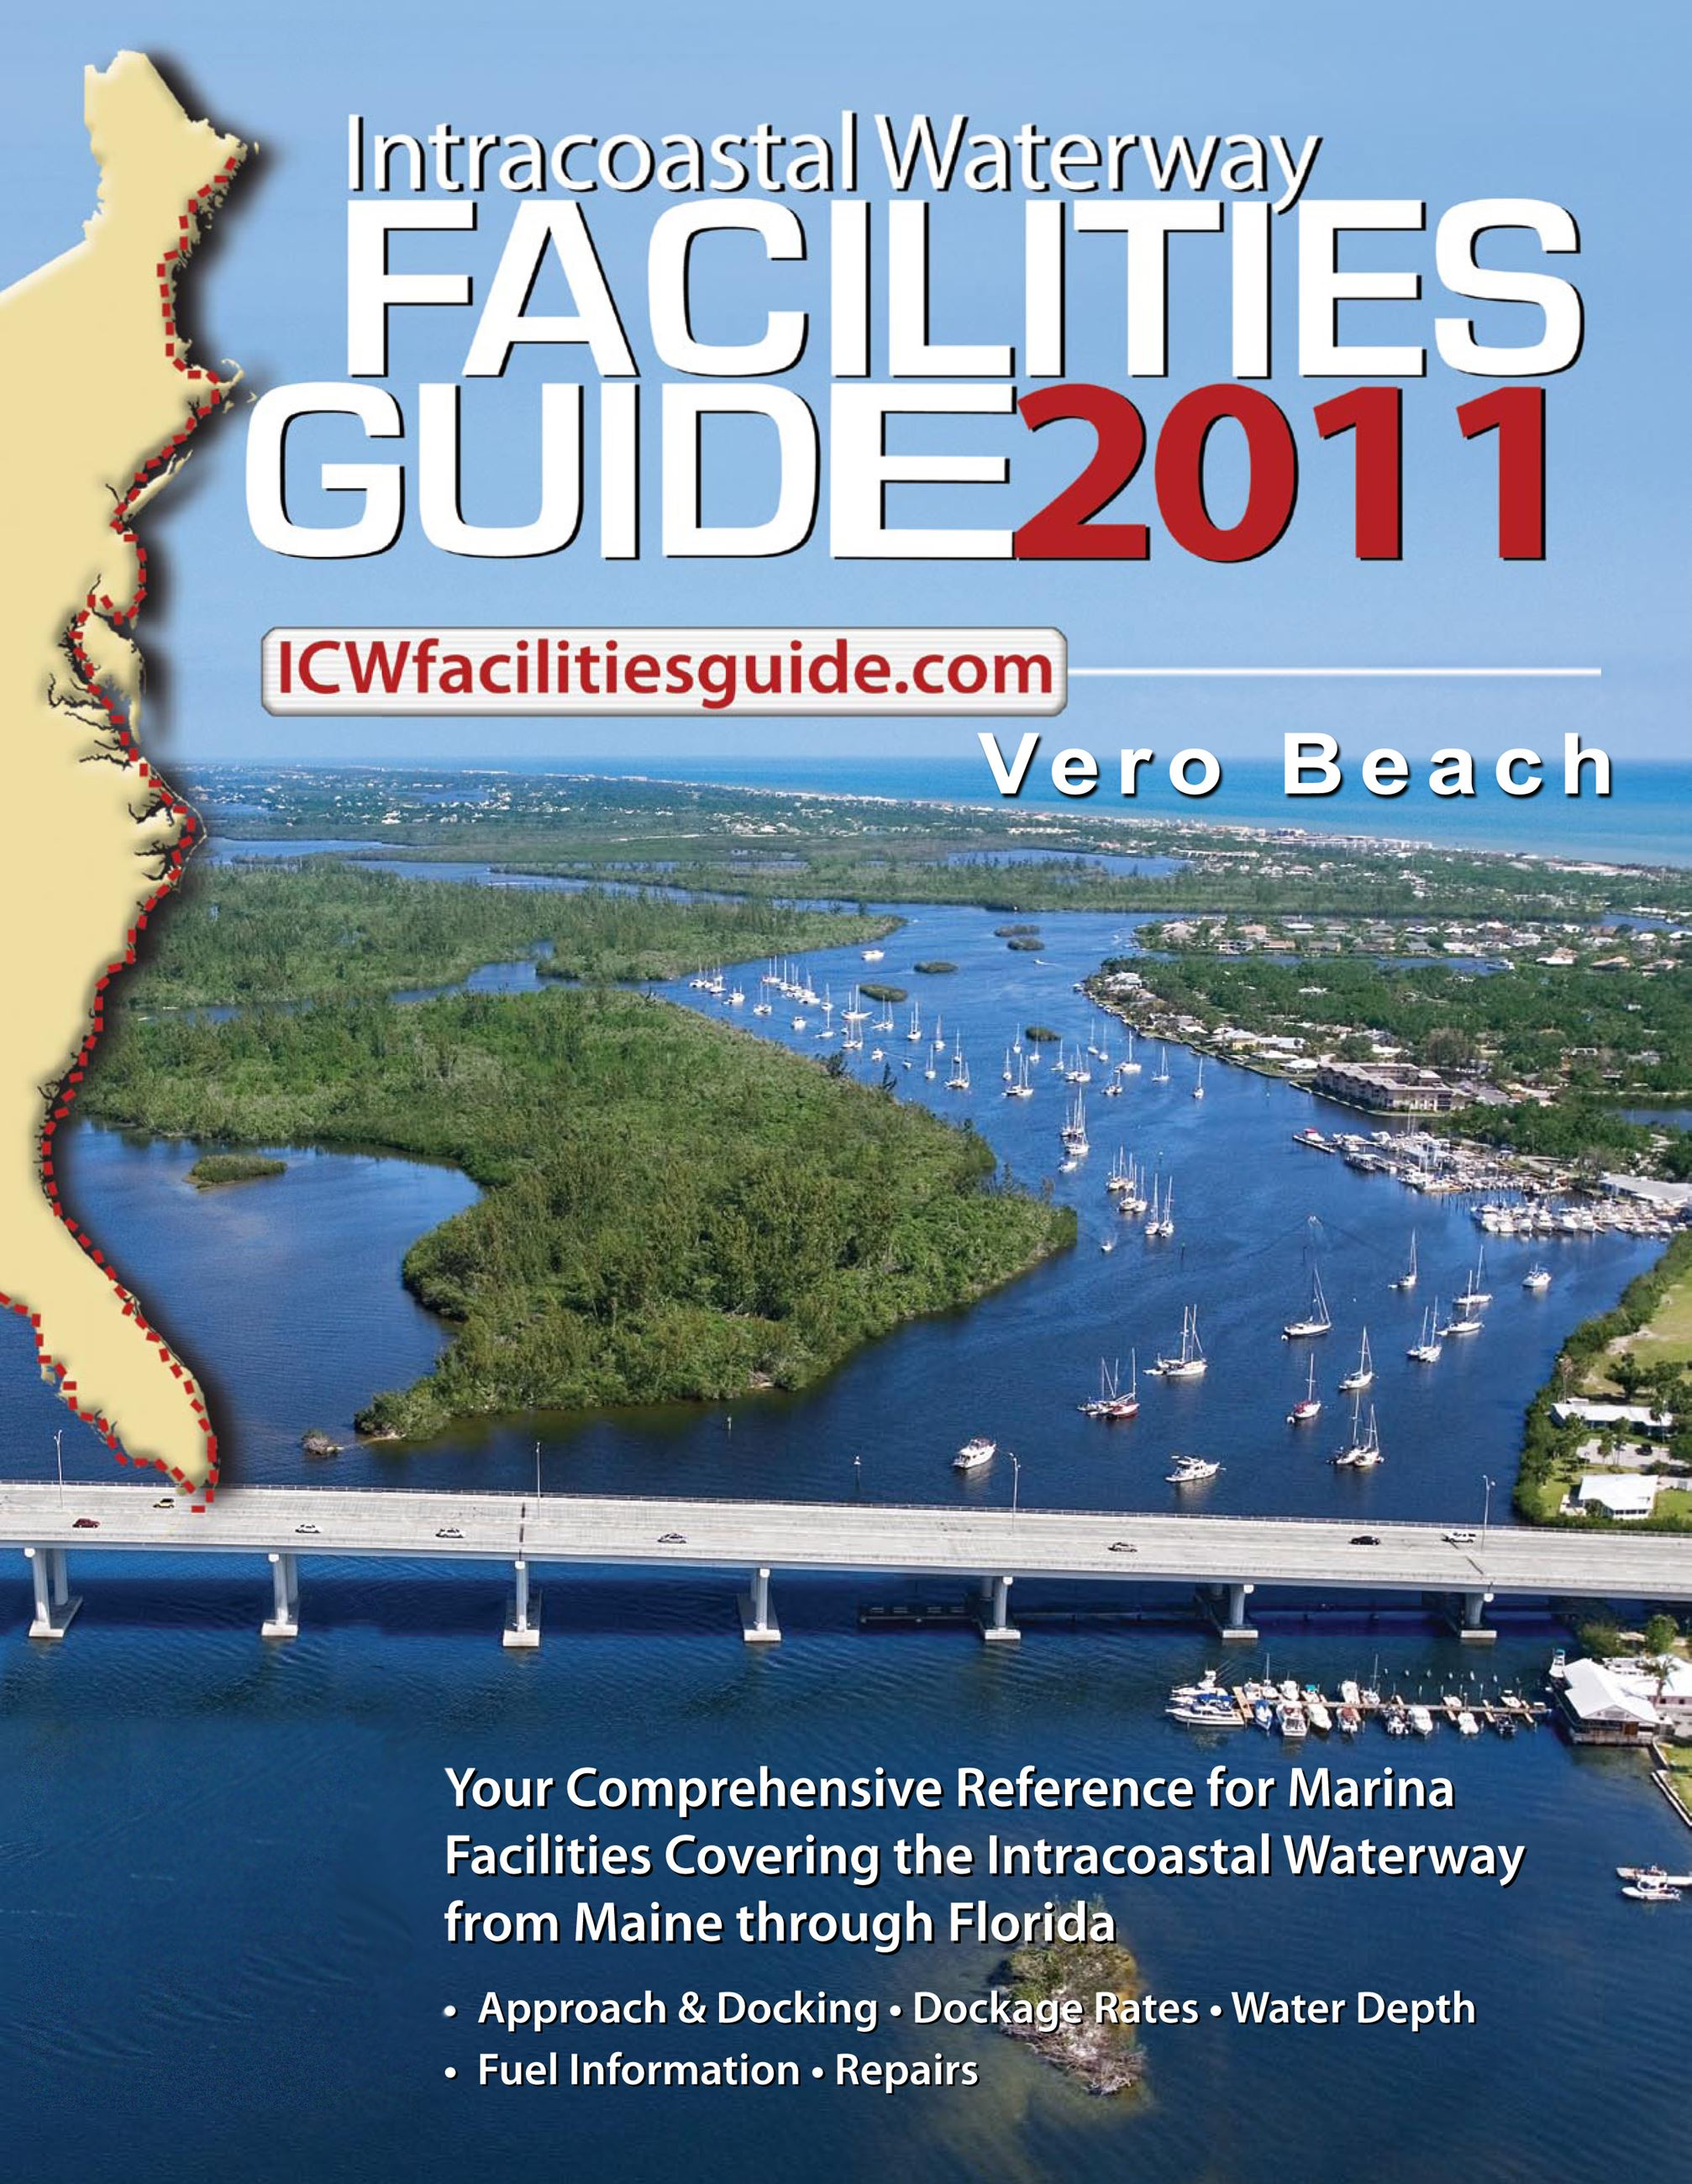 Cover Photo of Intracoastal Waterway Facilities Guide 2011